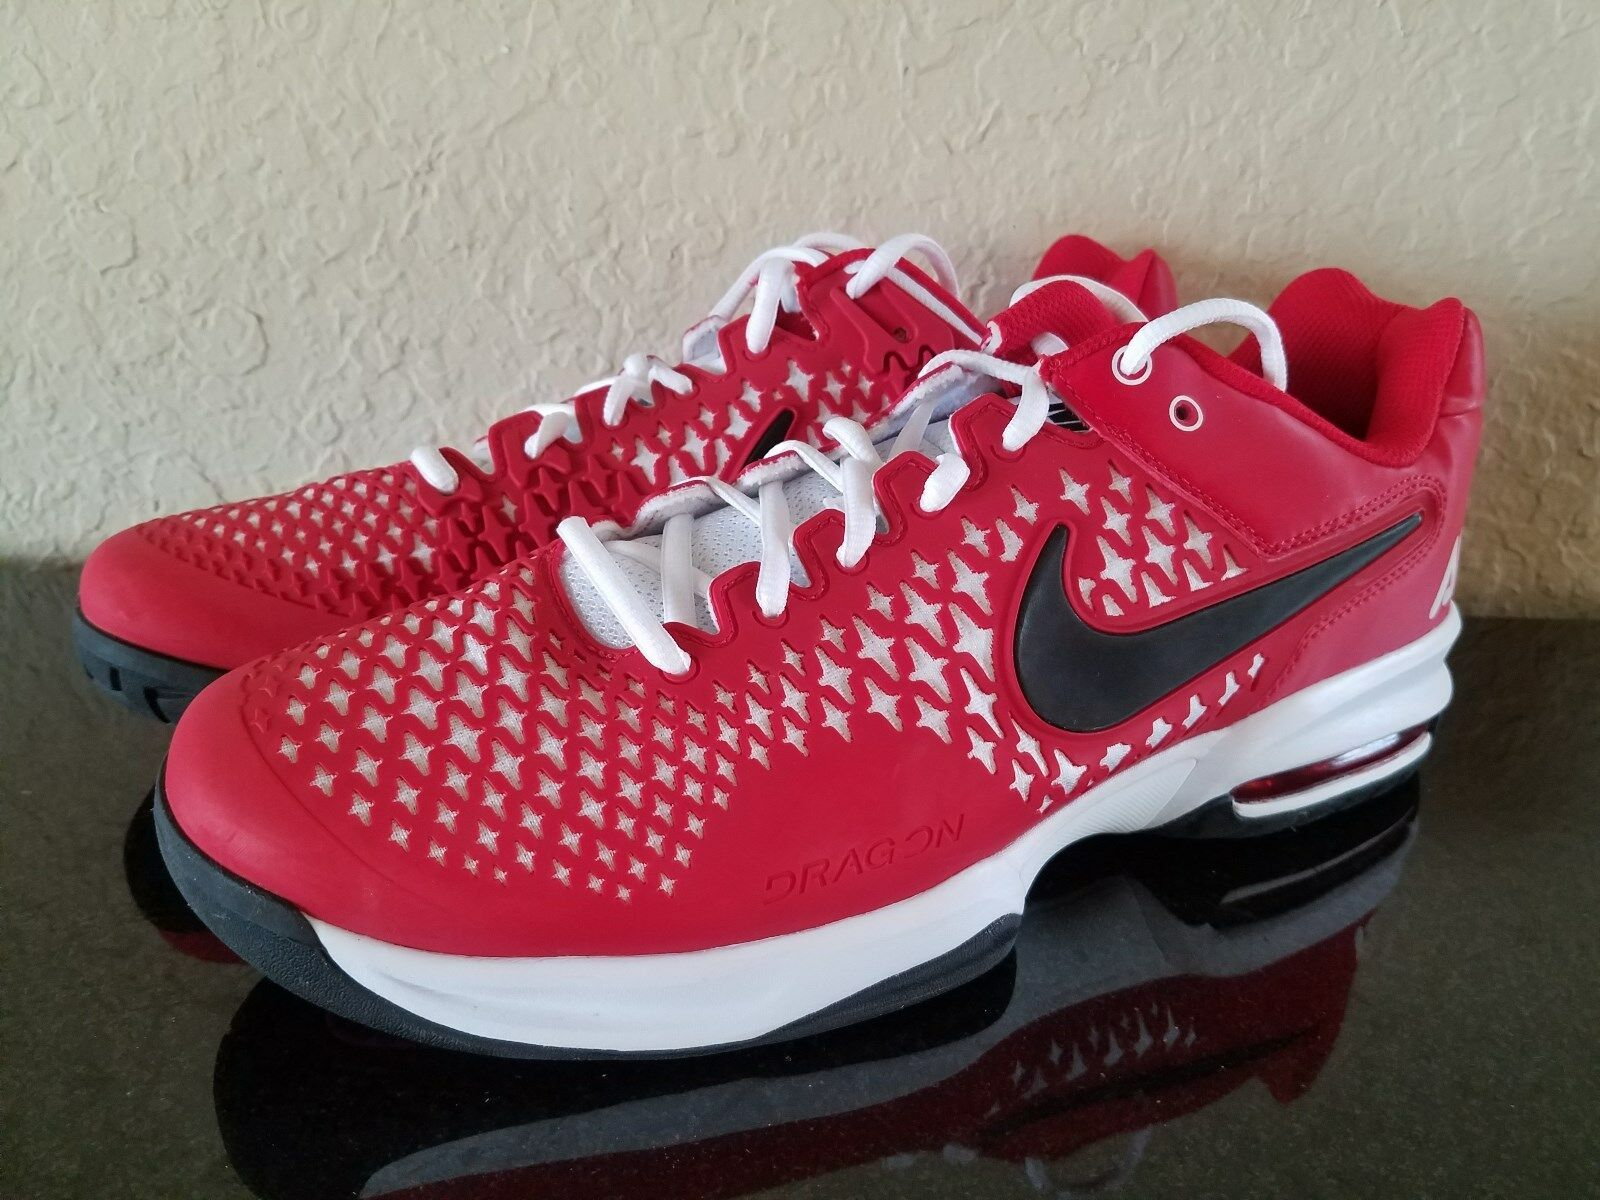 Nike Men's Air Max CageTennis Shoes Red -White best-selling model of the brand